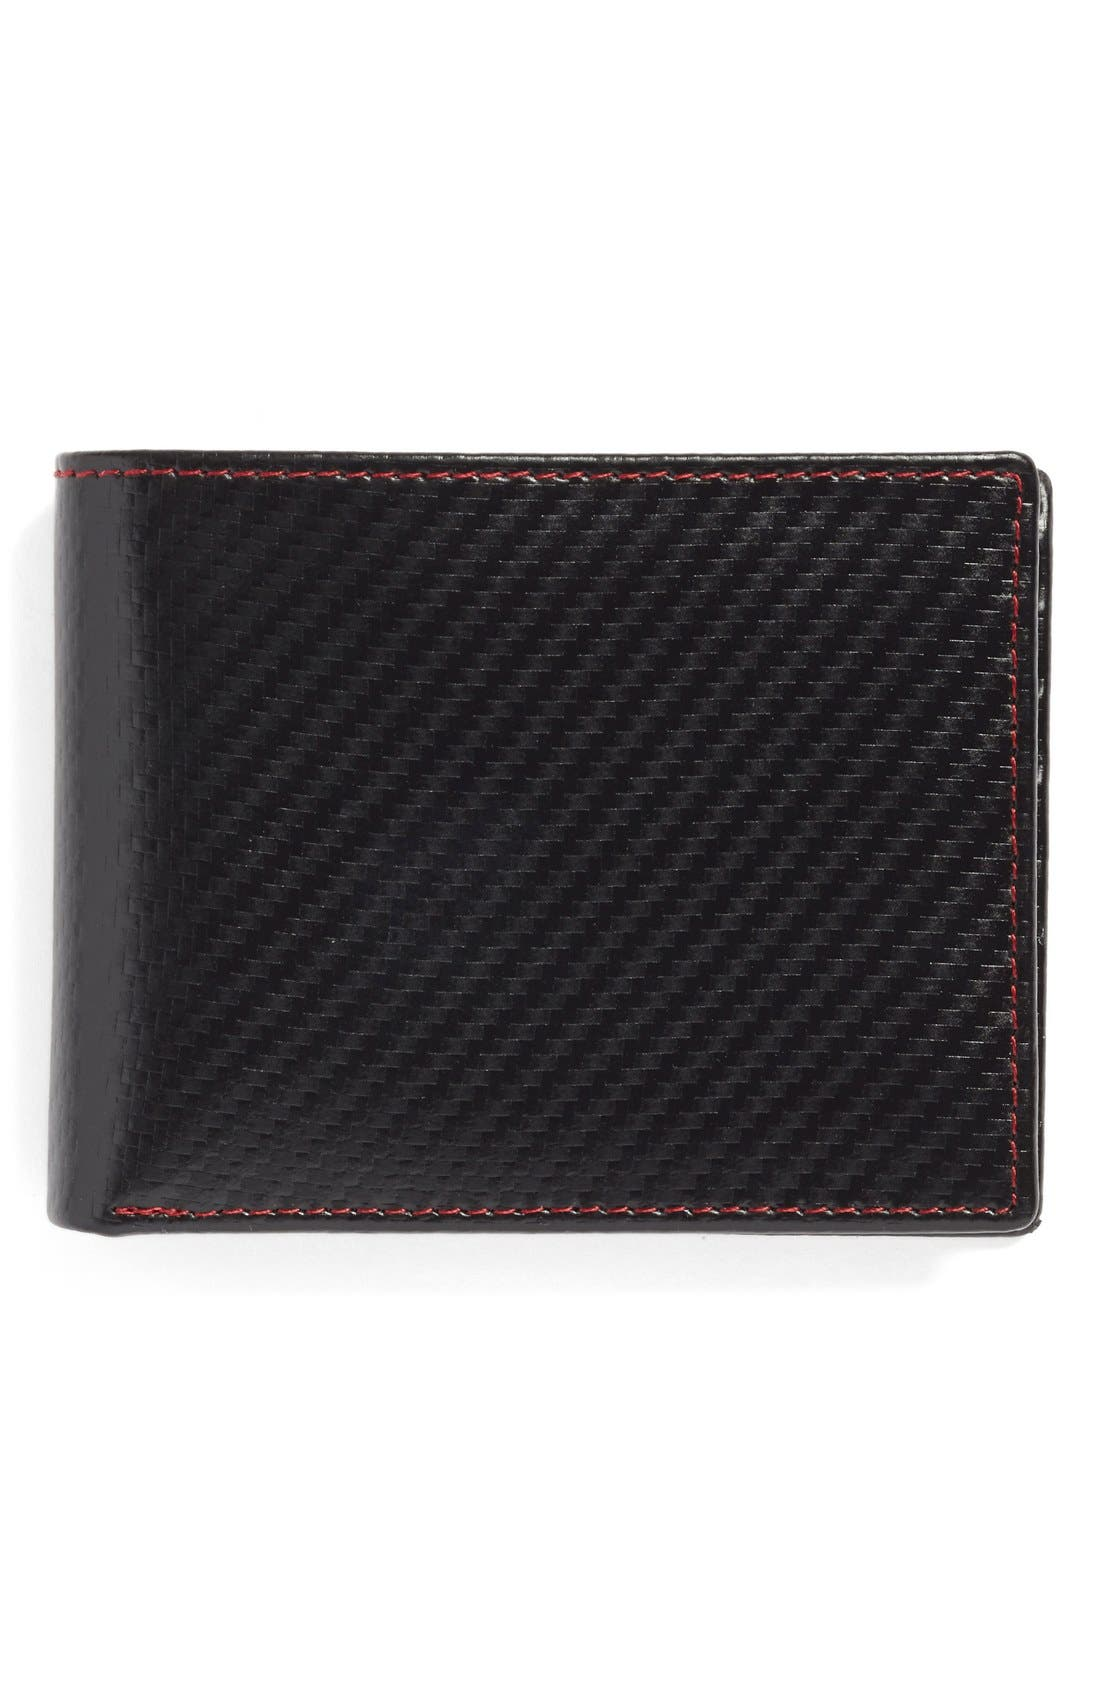 Flip Billfold Wallet,                             Main thumbnail 1, color,                             001